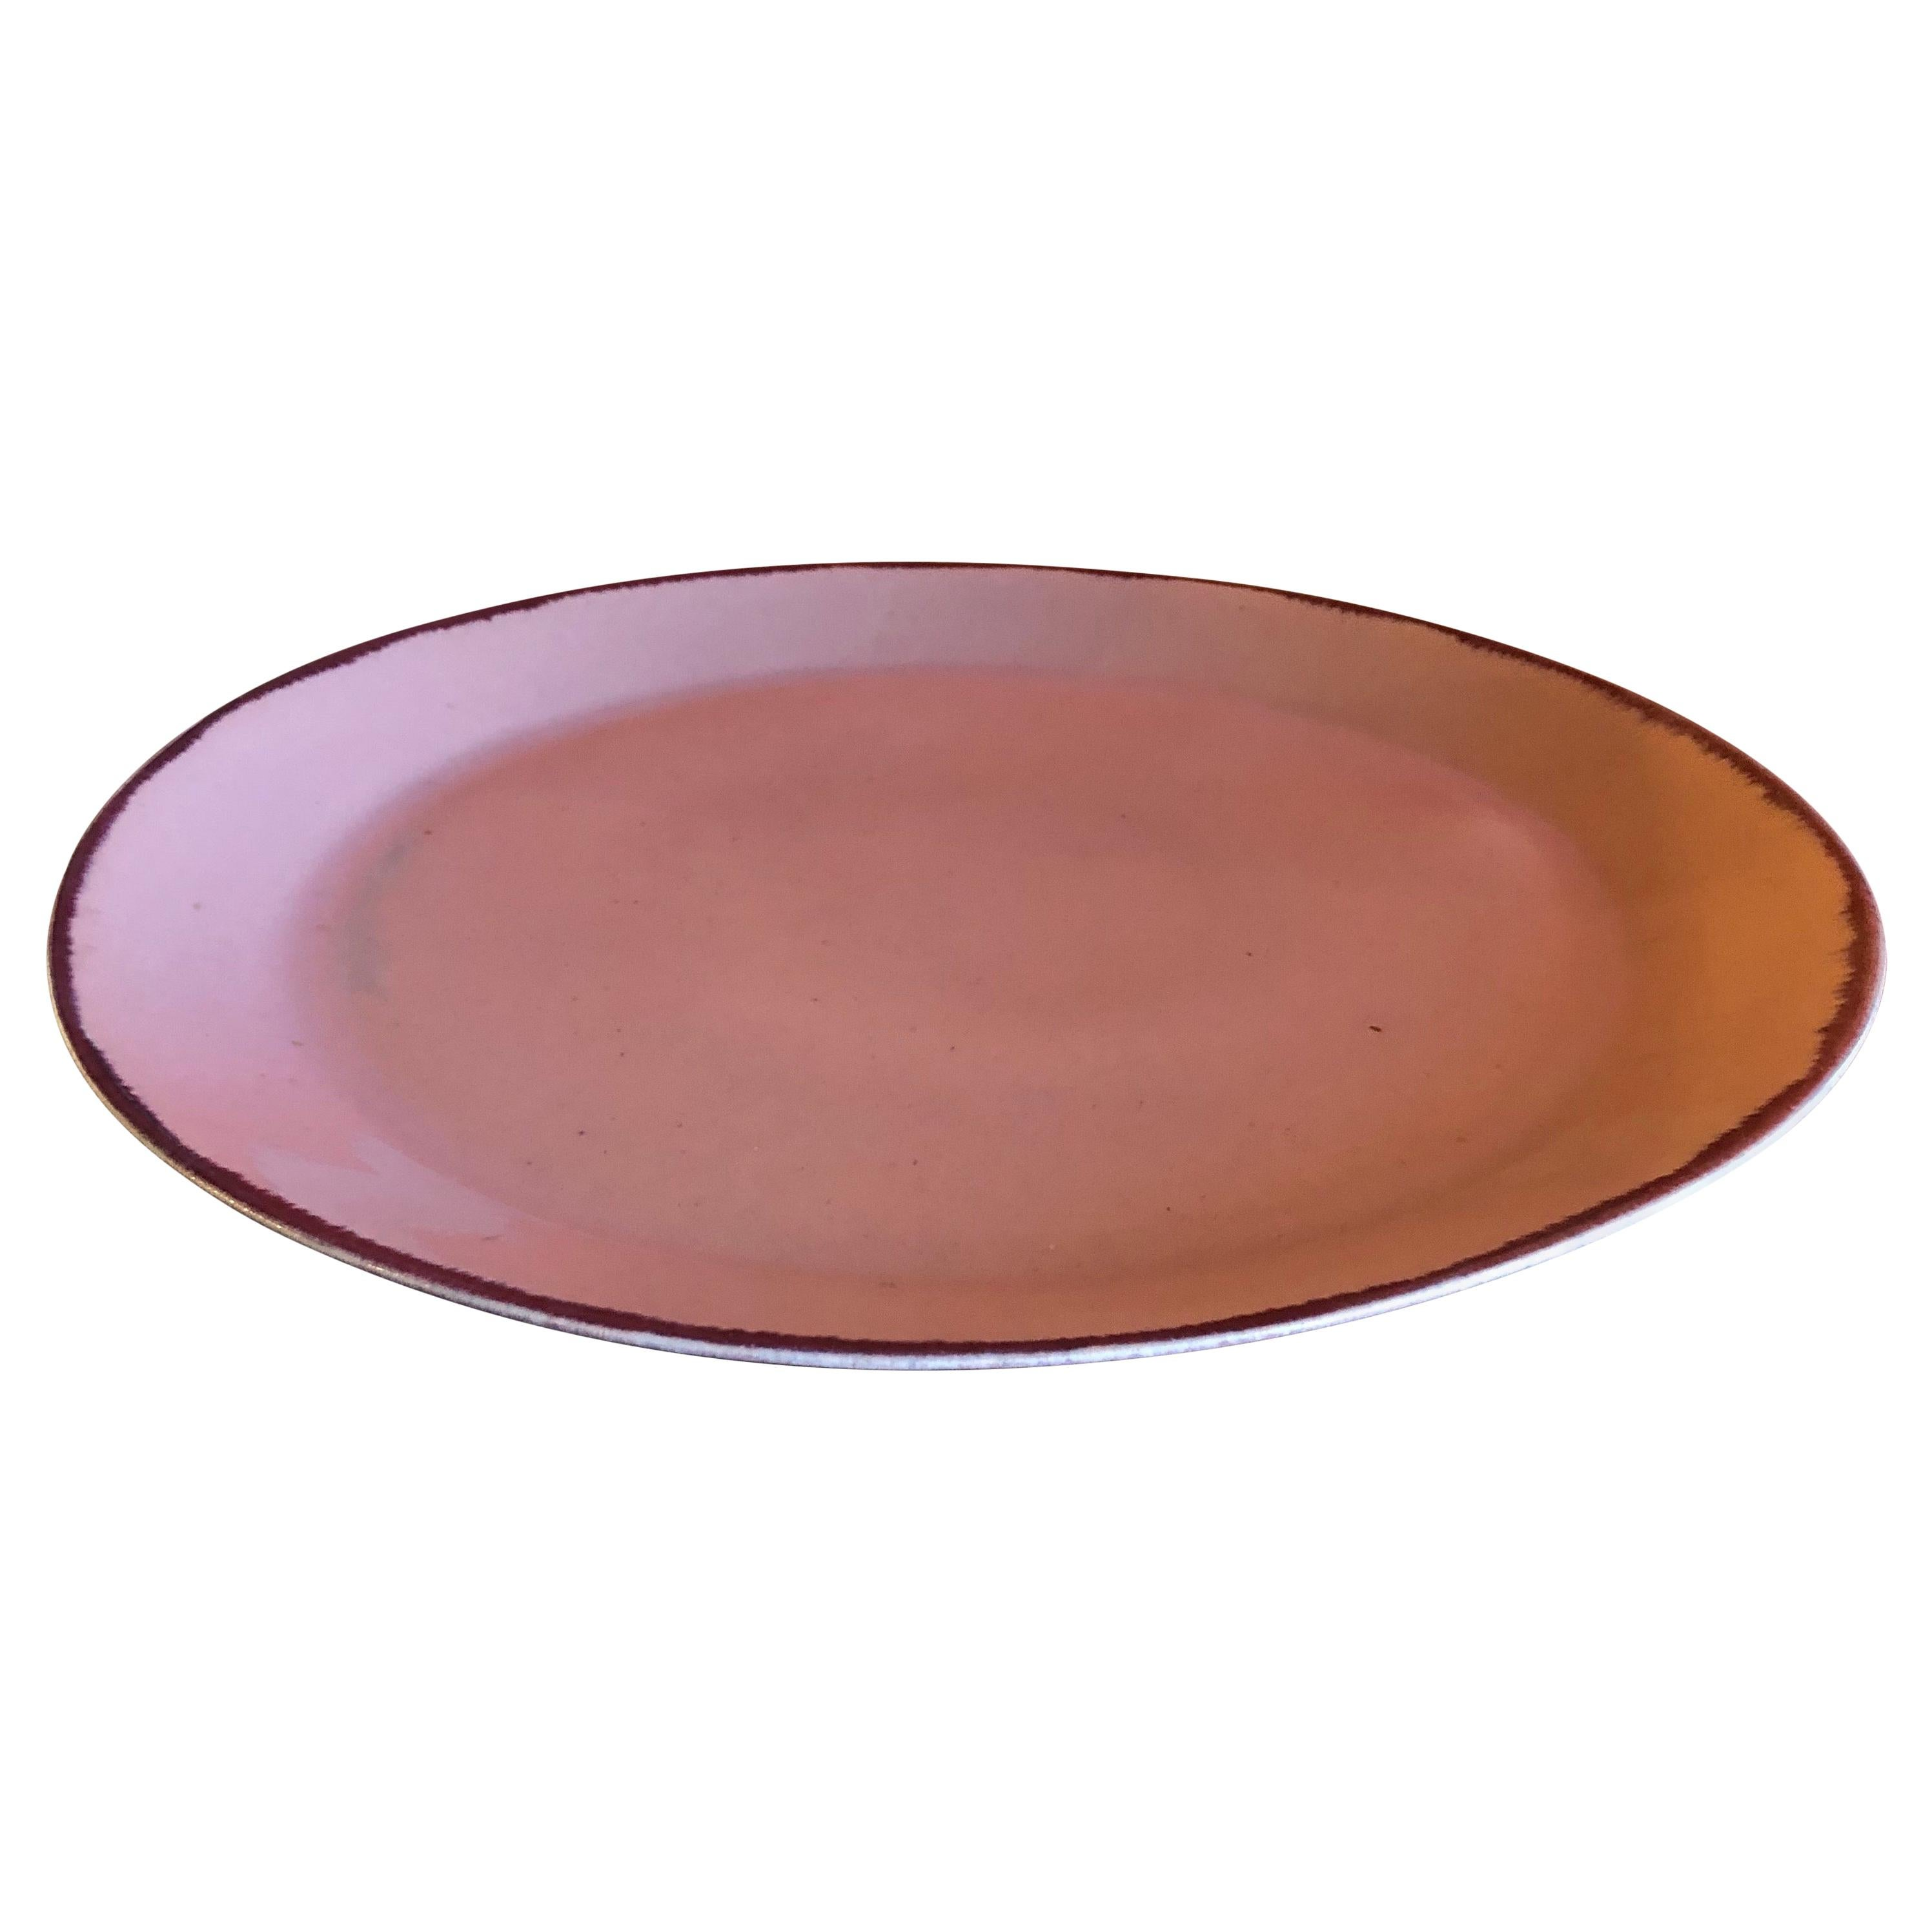 Massive Midcentury Platter by Winfield Pottery of California